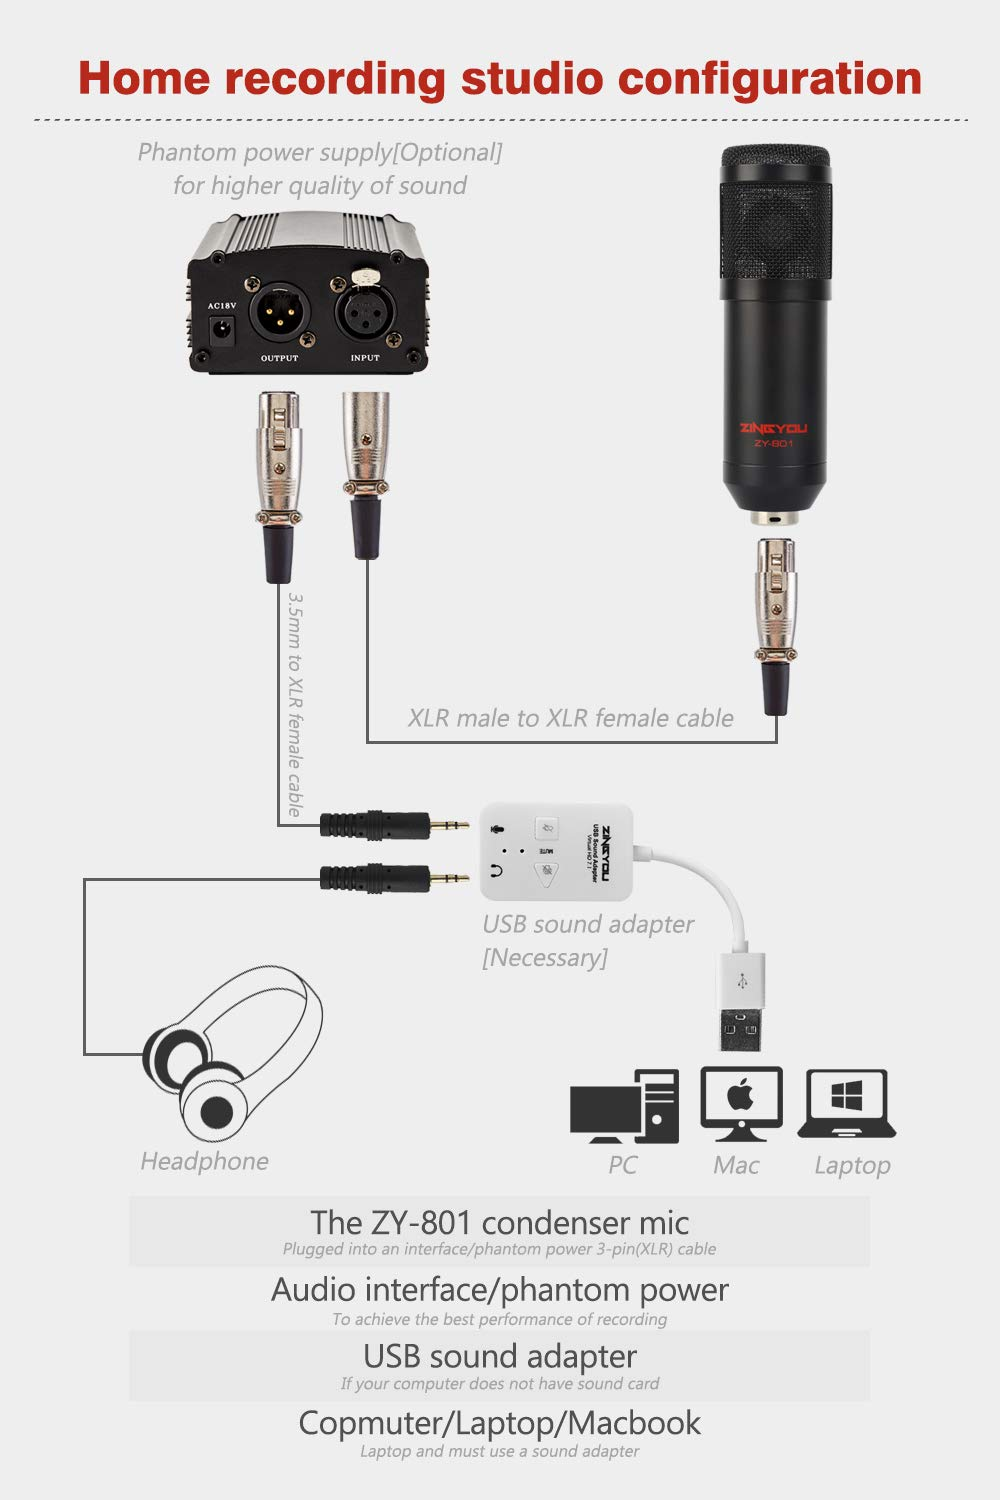 ZINGYOU Condenser Microphone ZY-801+, Professional Studio Microphone include Sound Card, Desktop Cardioid Condenser Mic, PC Recording and Broadcasting(Matte Black) by ZINGYOU (Image #6)